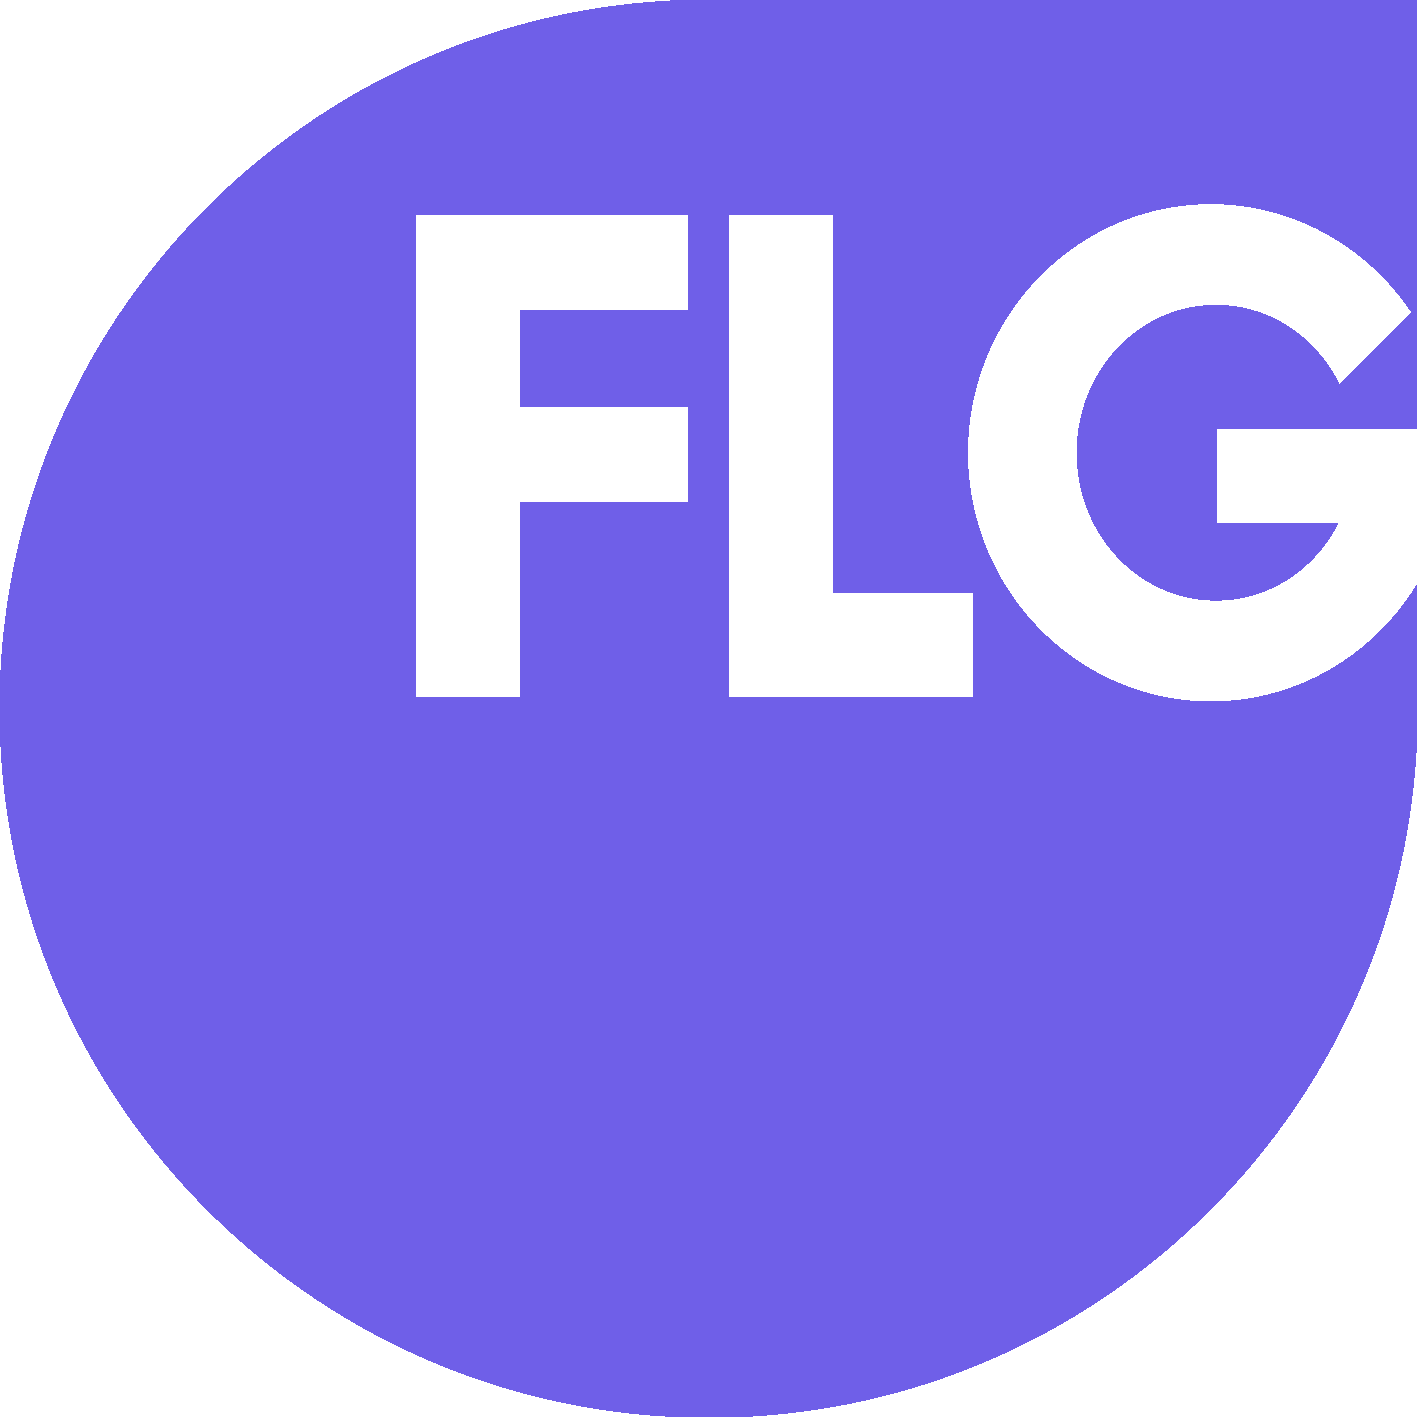 FLG Business Technology Limited